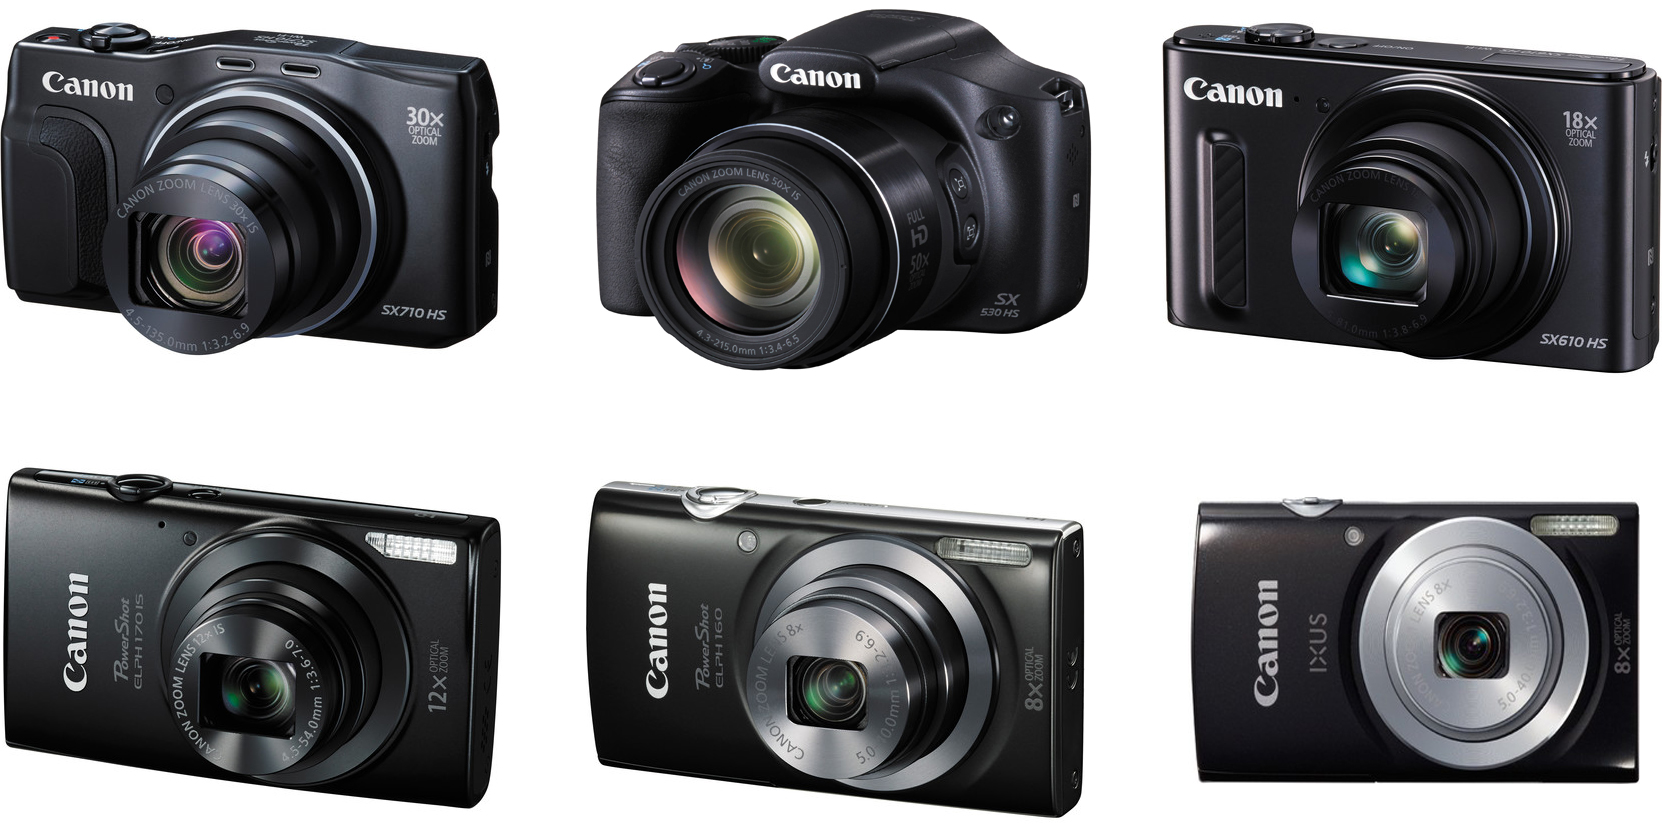 Particular Canon Powershot Hs Camera Rumors Canon Powershot Sx710 Hs Wifi Canon Powershot Sx710 Hs How To Use dpreview Canon Powershot Sx710